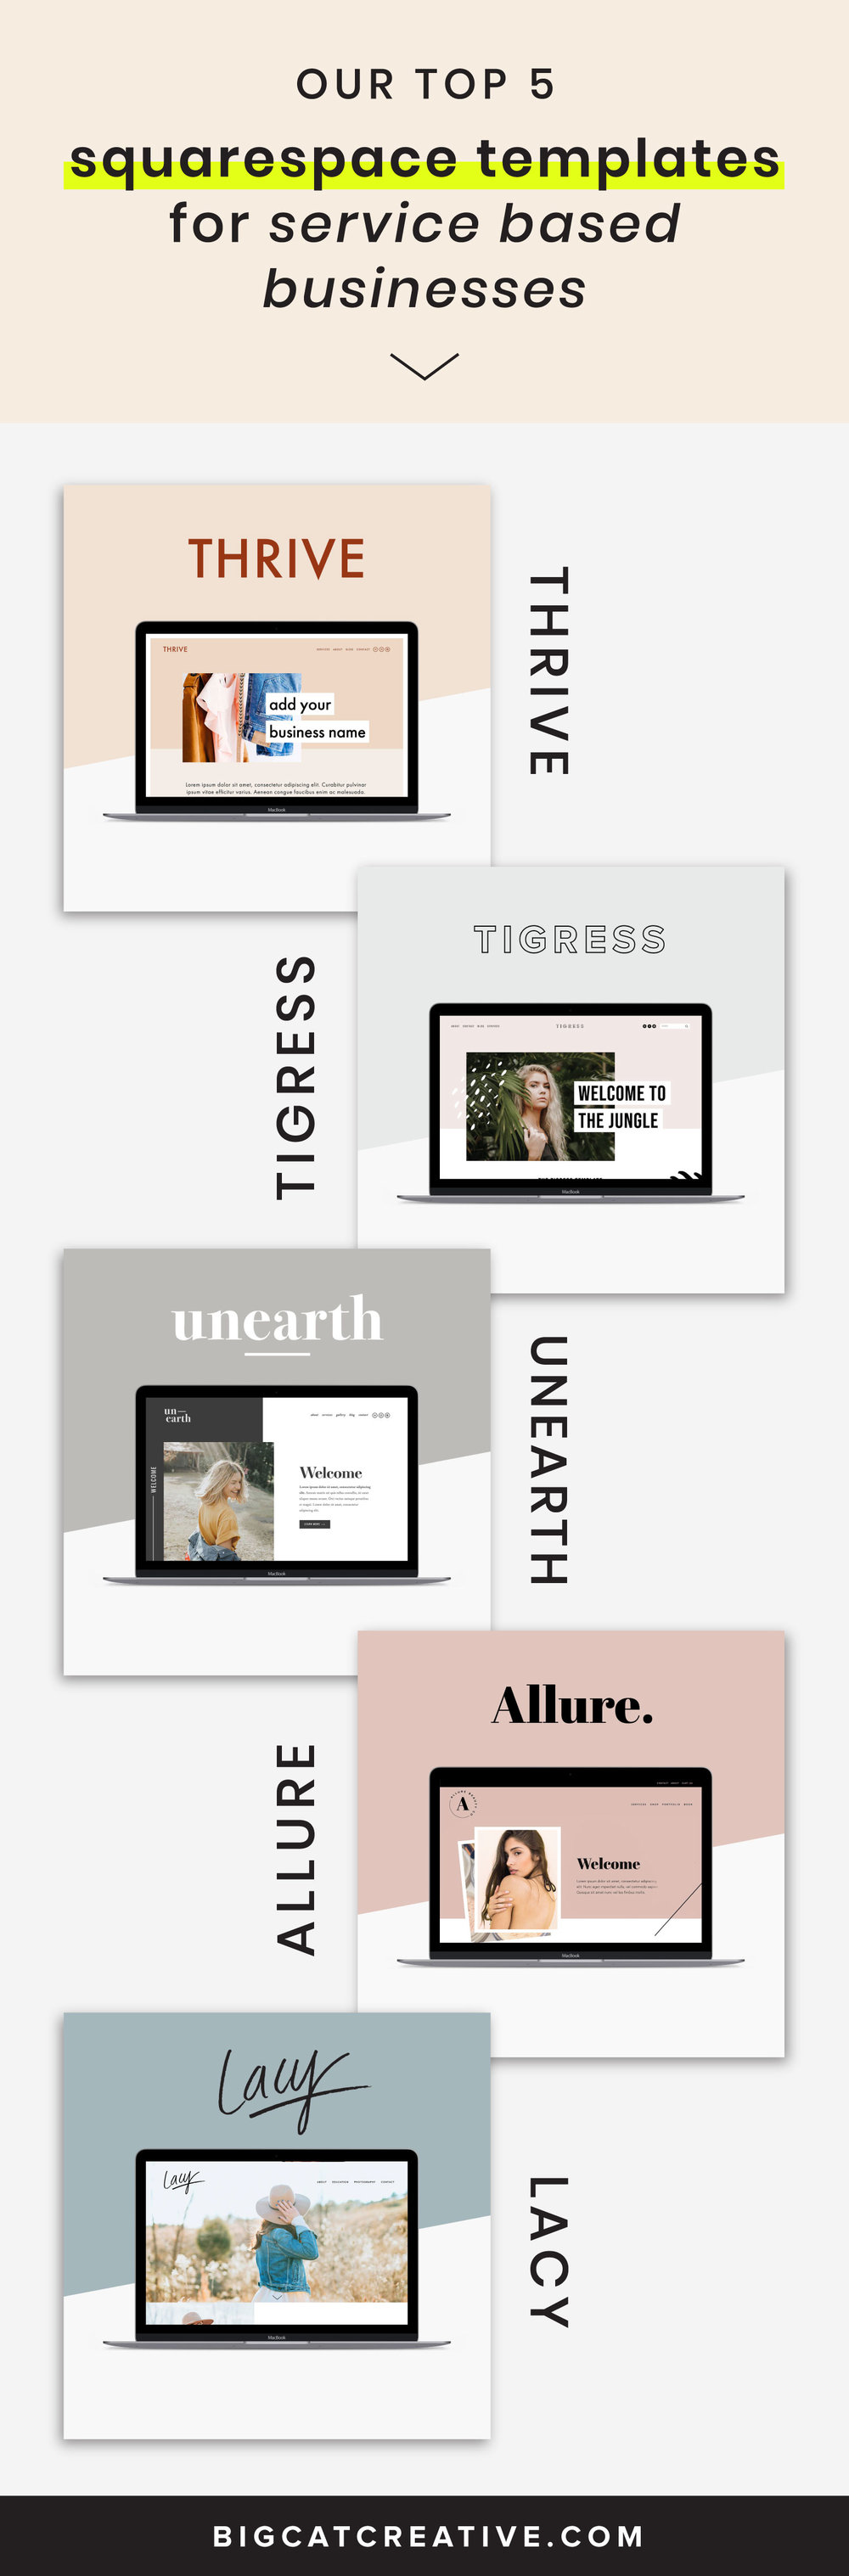 Top Squarespace Templates for Services Based Businesses and Small Businesses